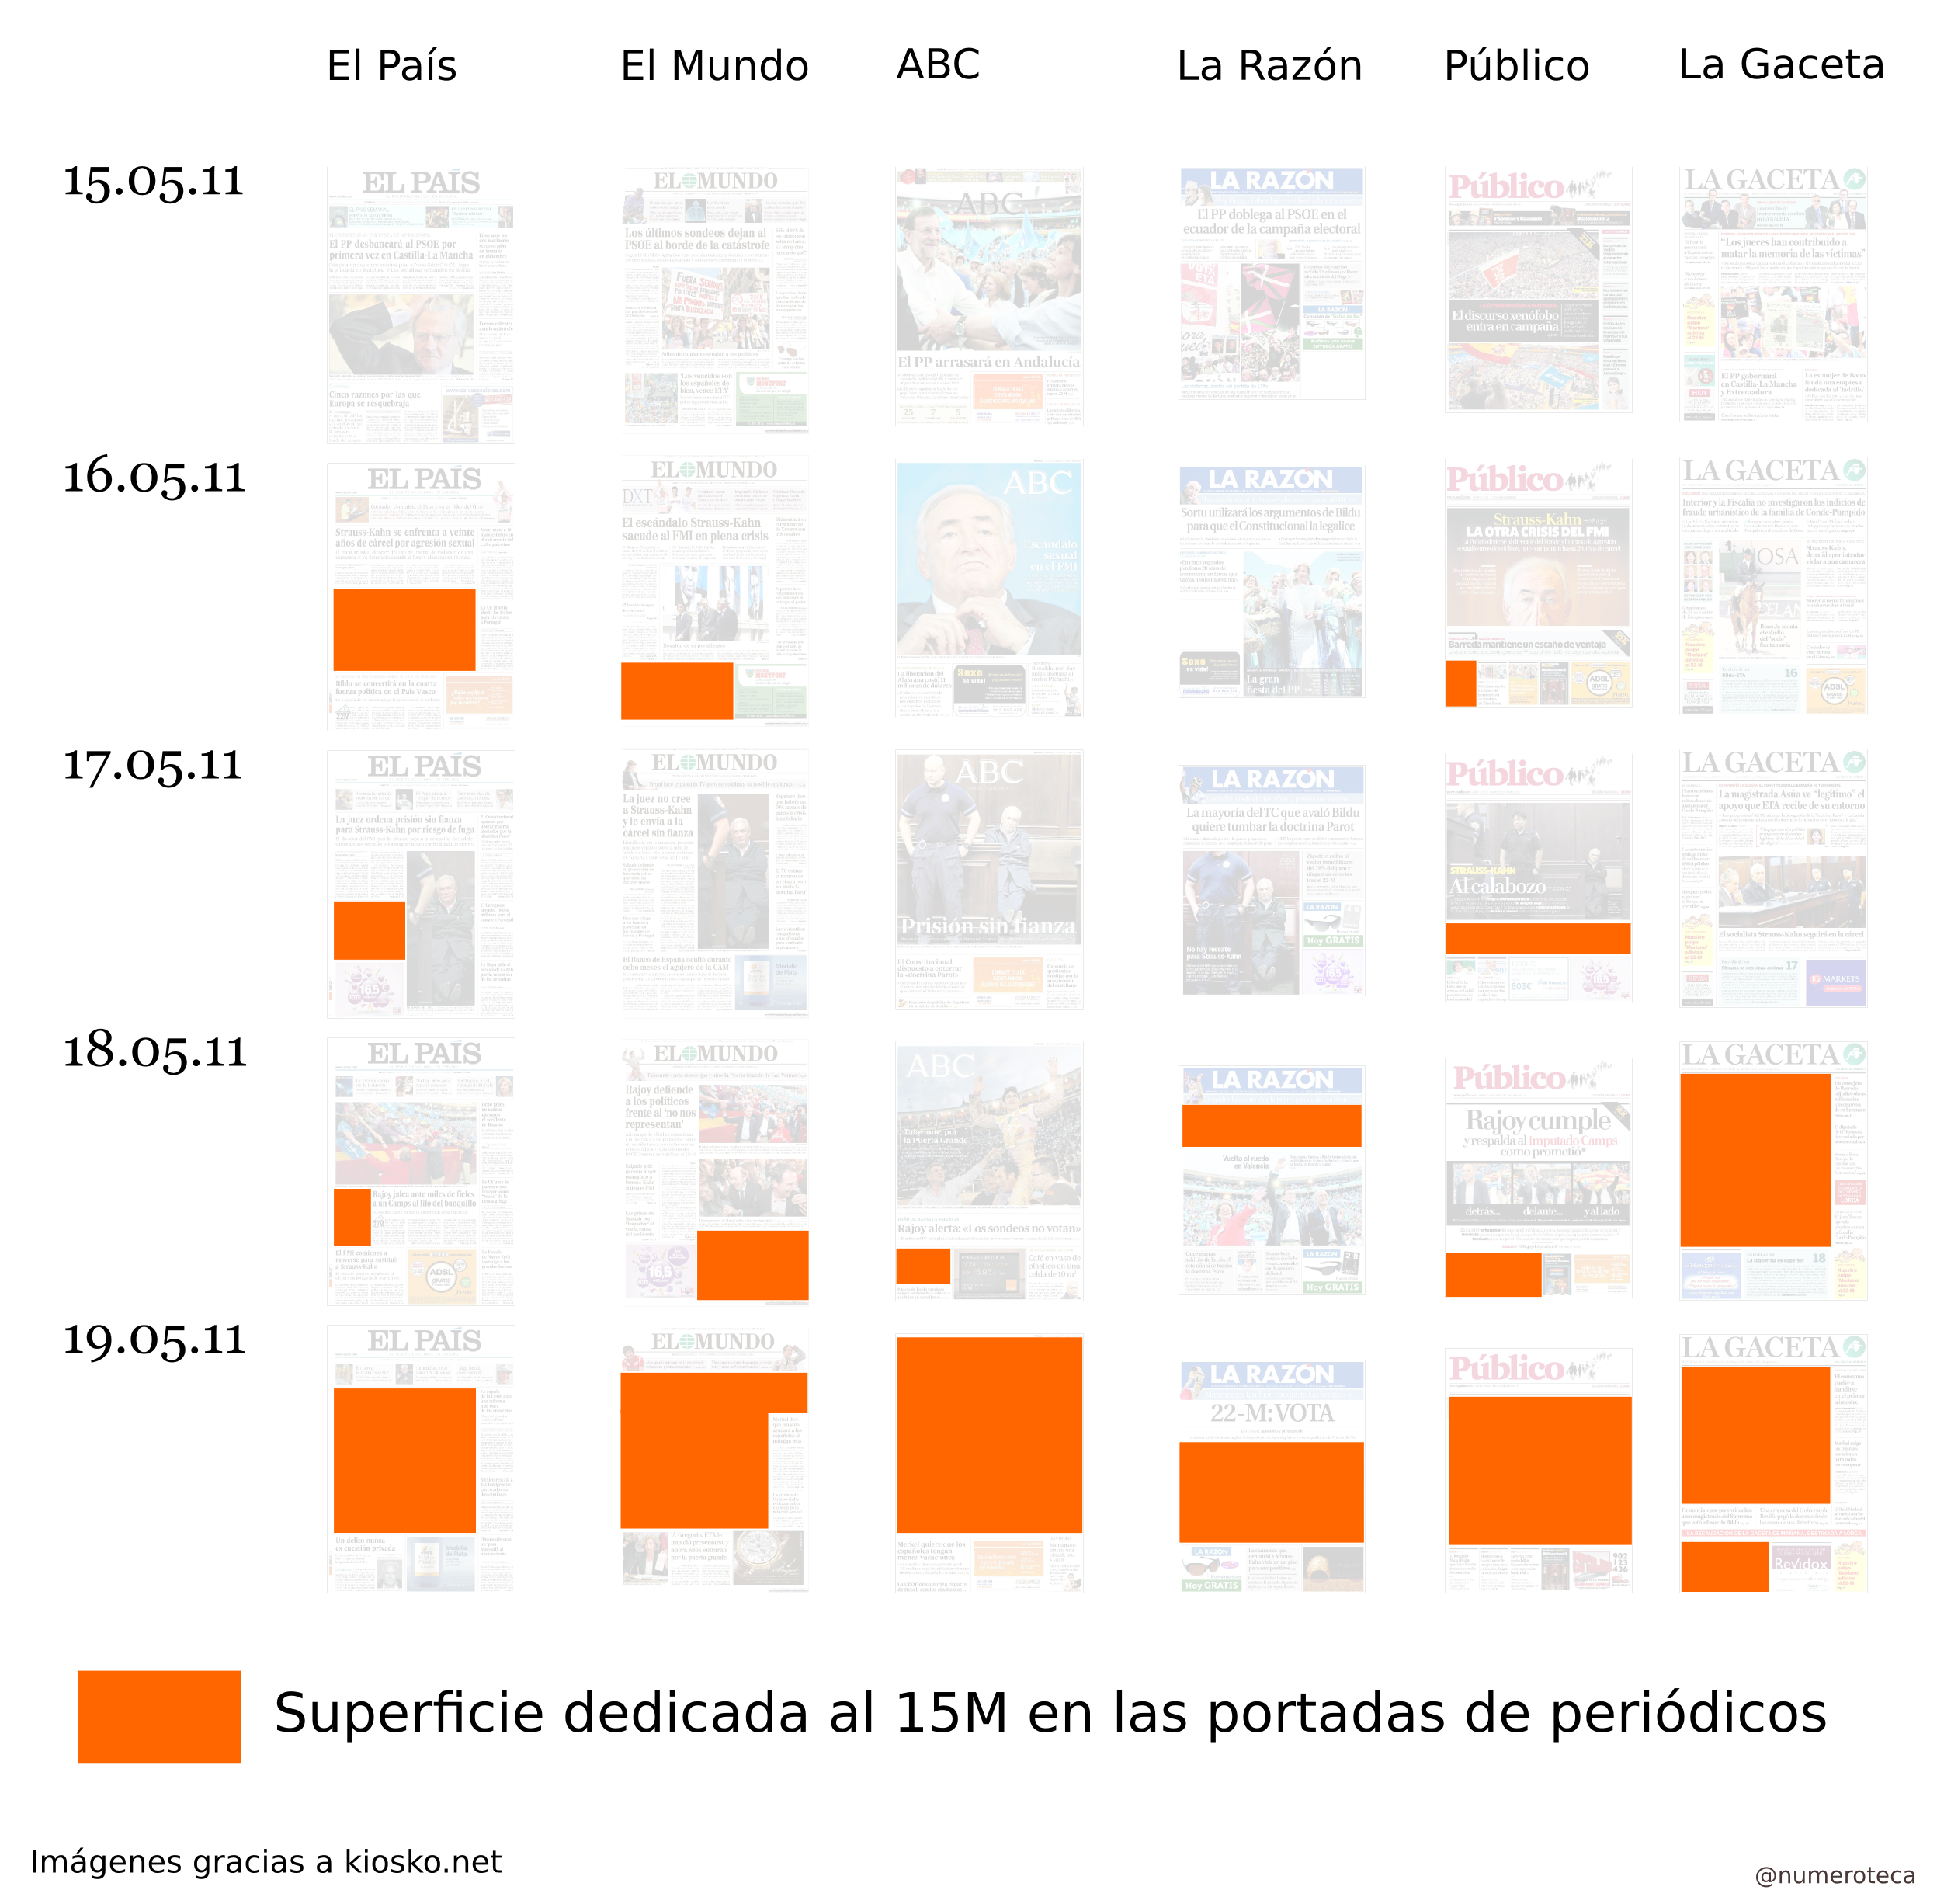 An content analysis of the first page of newspapers